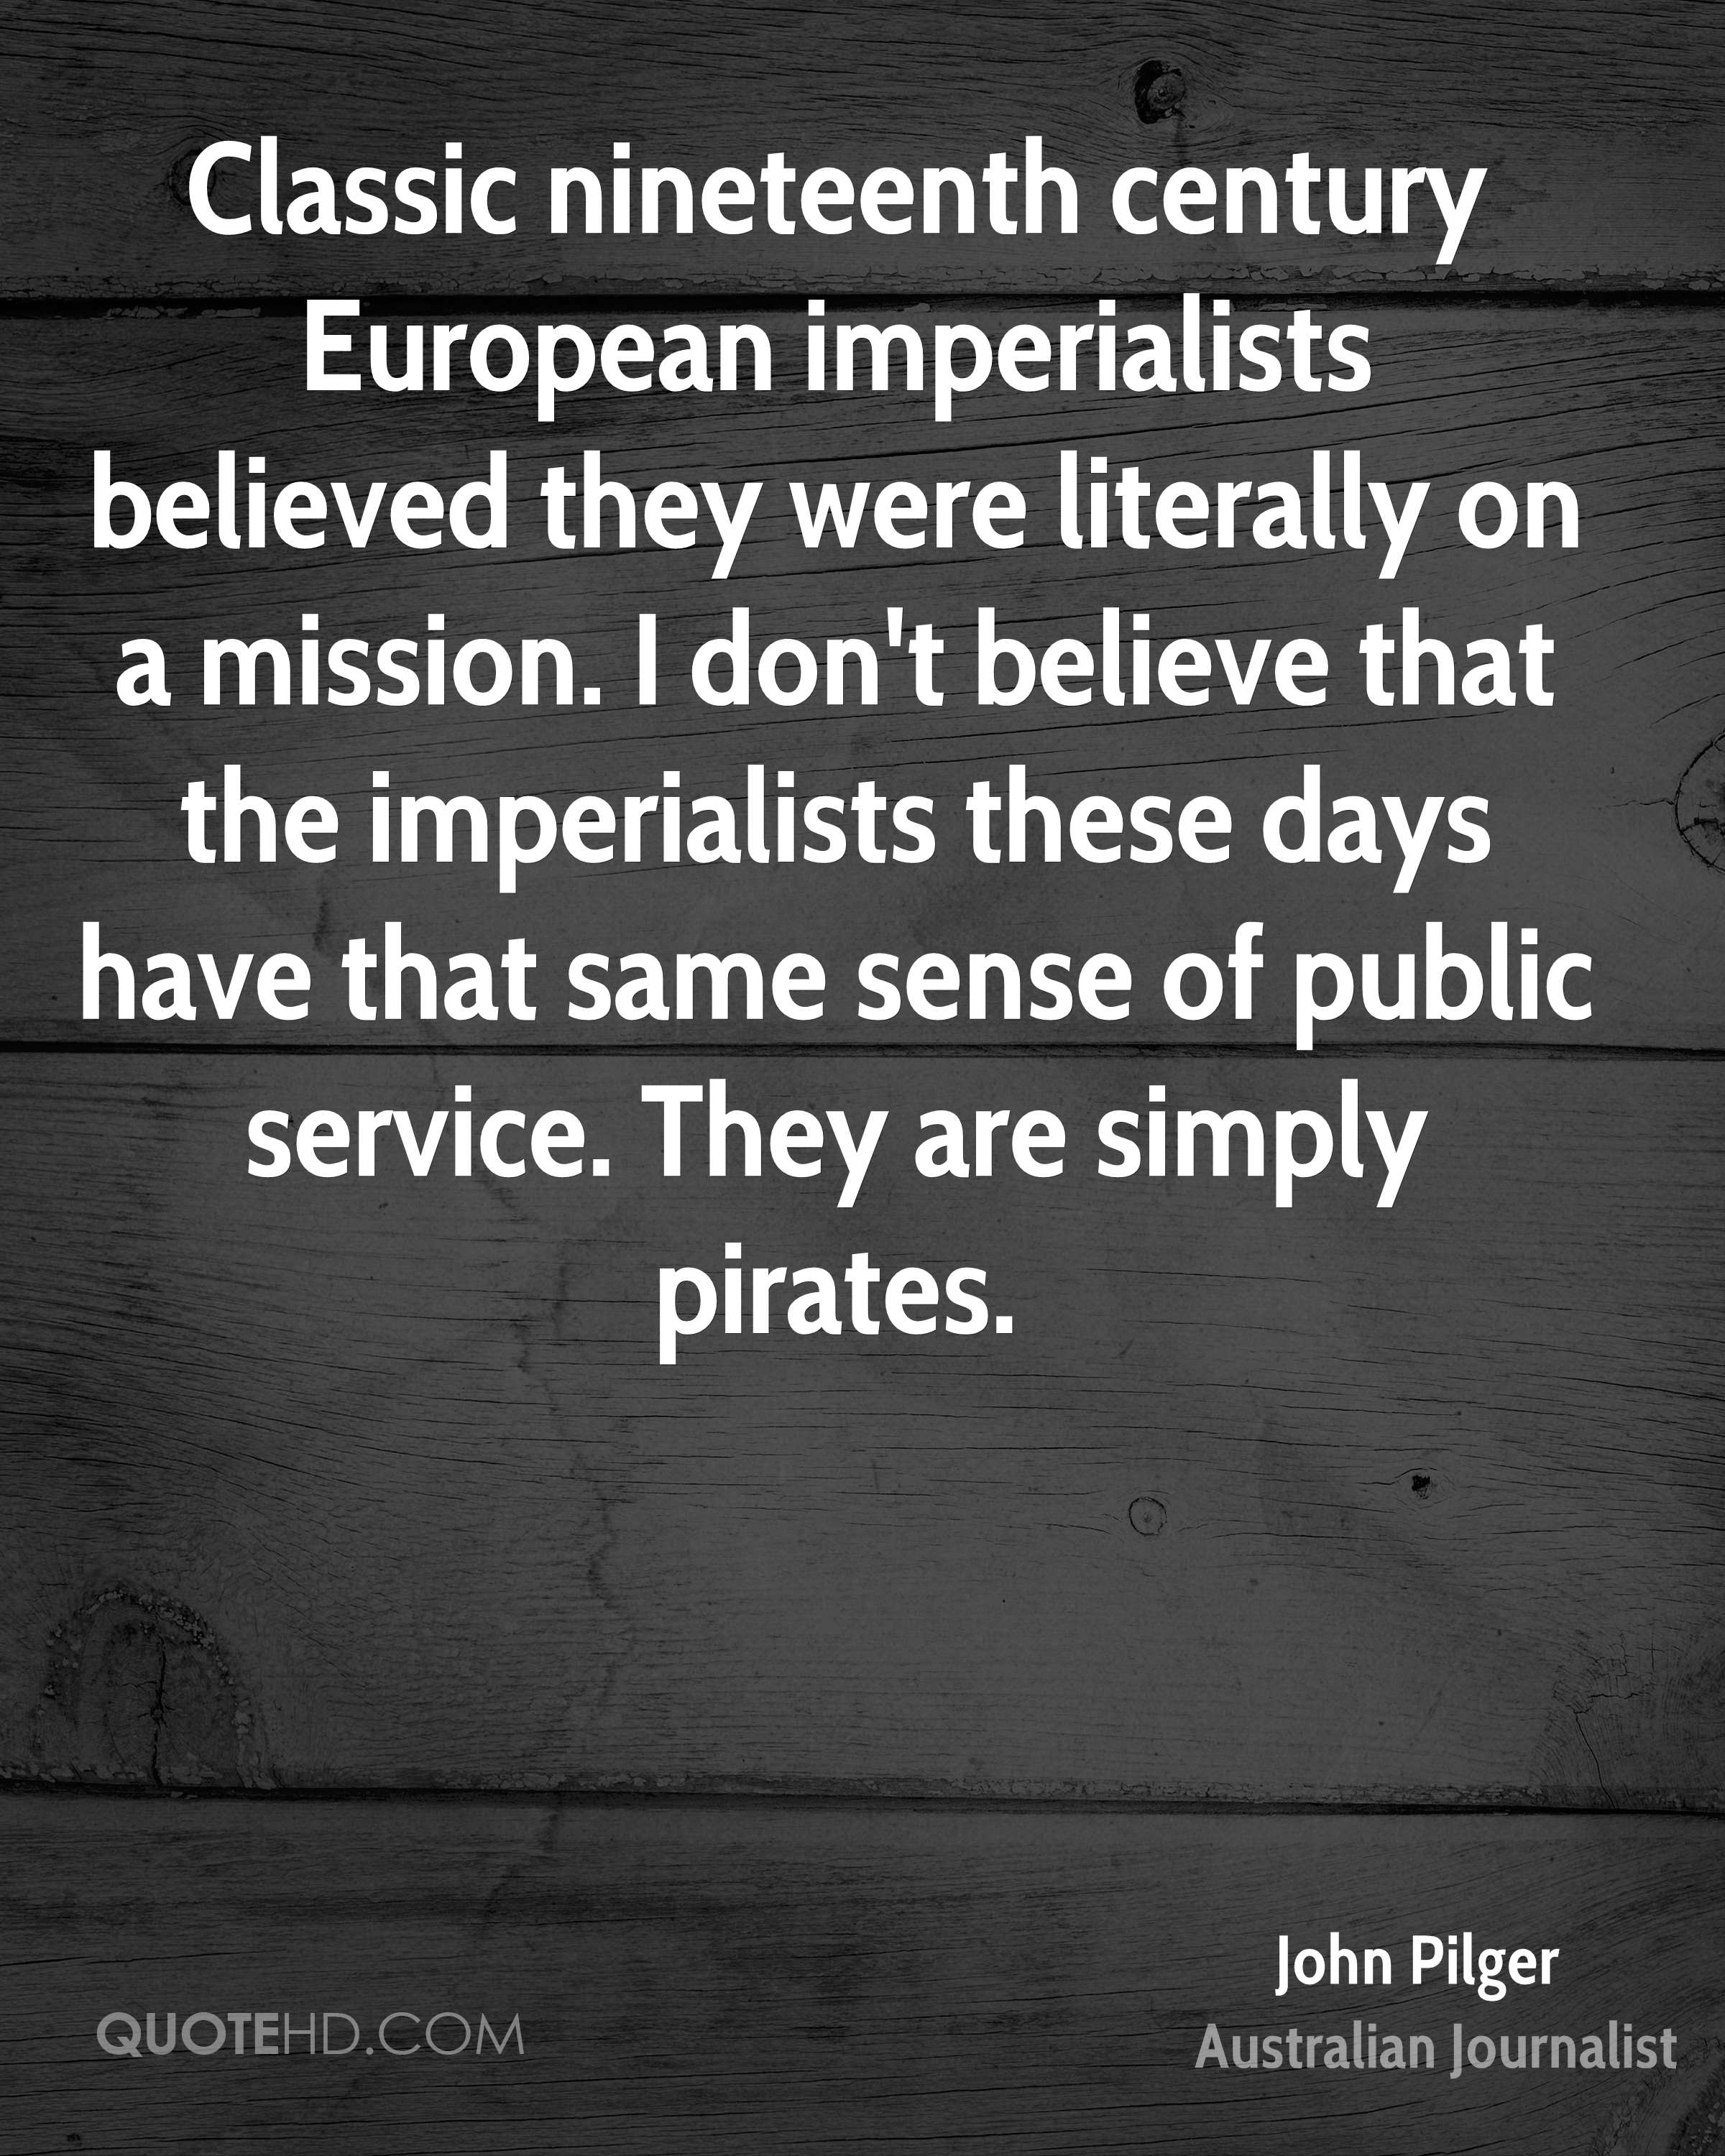 Classic nineteenth century European imperialists believed they were literally on a mission. I don't believe that the imperialists these days have that same sense of public service. They are simply pirates.